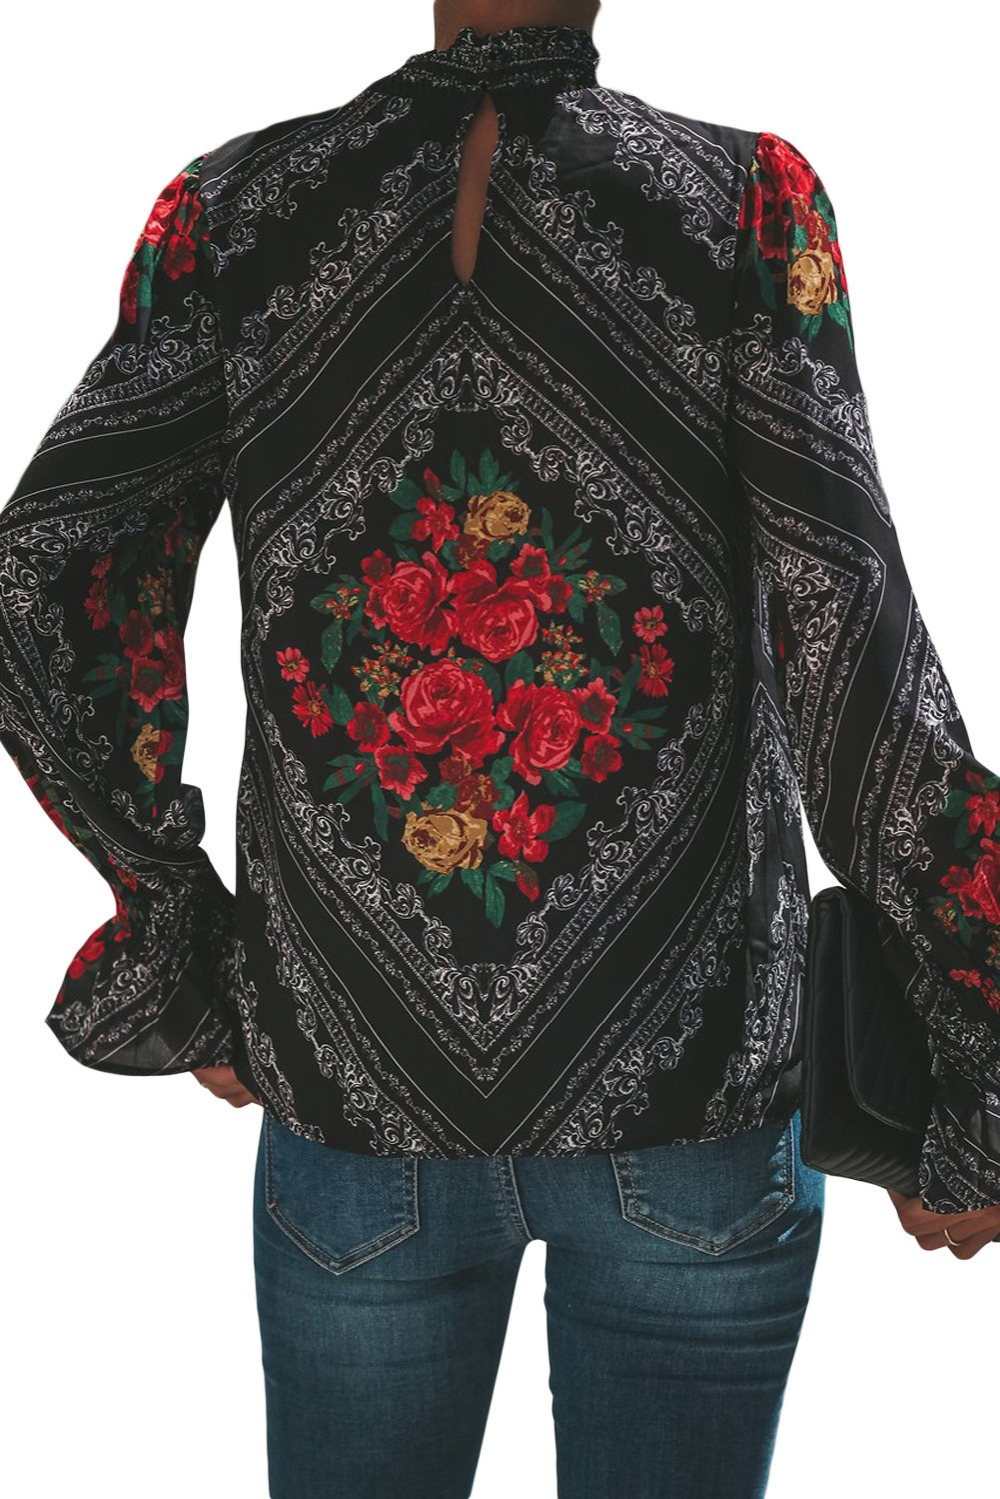 Gothic-Red-Rose-Print-Smocked-Long-Sleeve-Blouse-LC251632-3-2